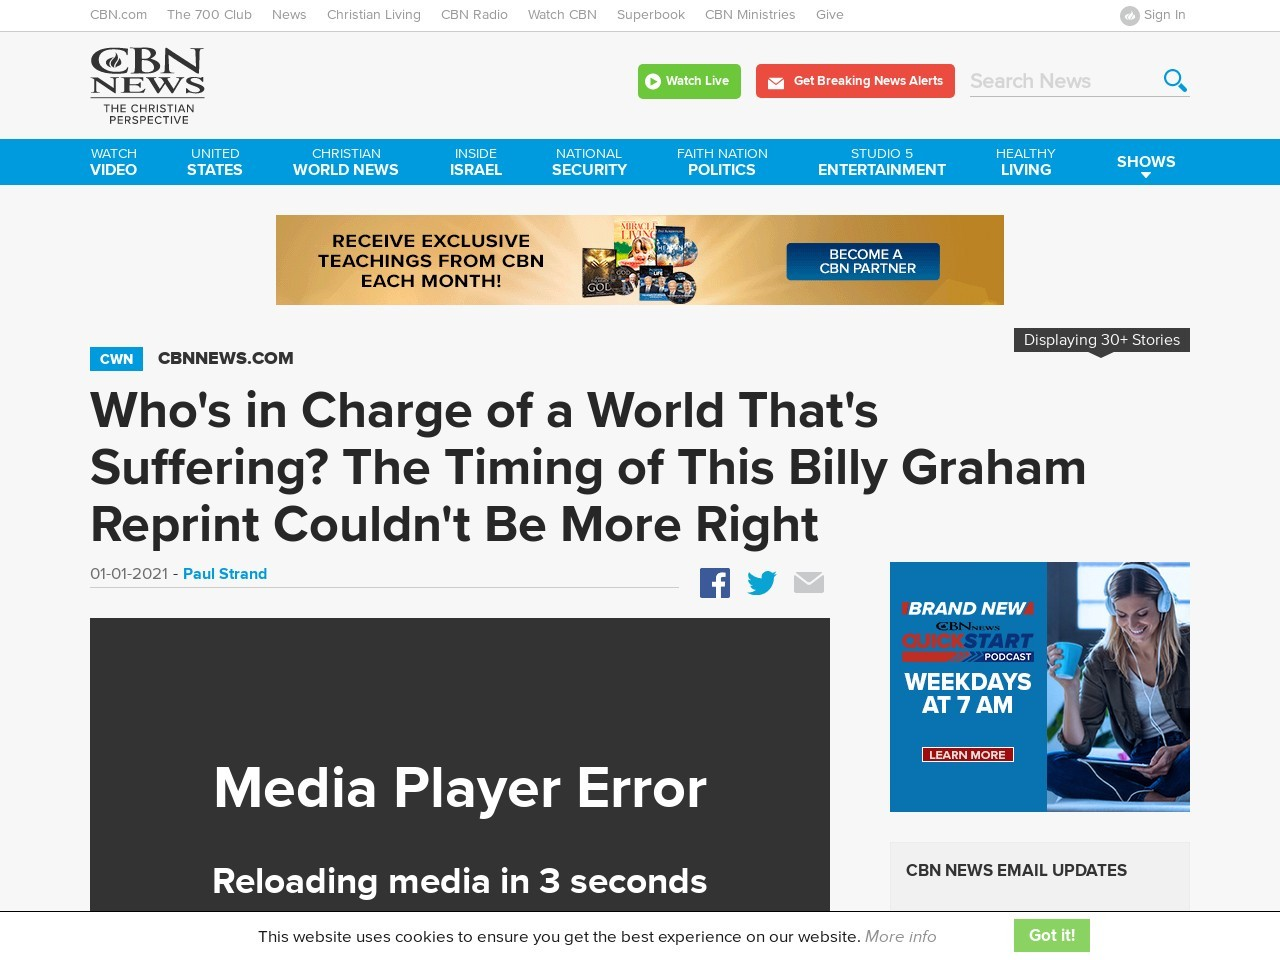 Who's in Charge of a World That's Suffering? Billy Graham's Reprinted Book Reminds Readers God's Still in Control